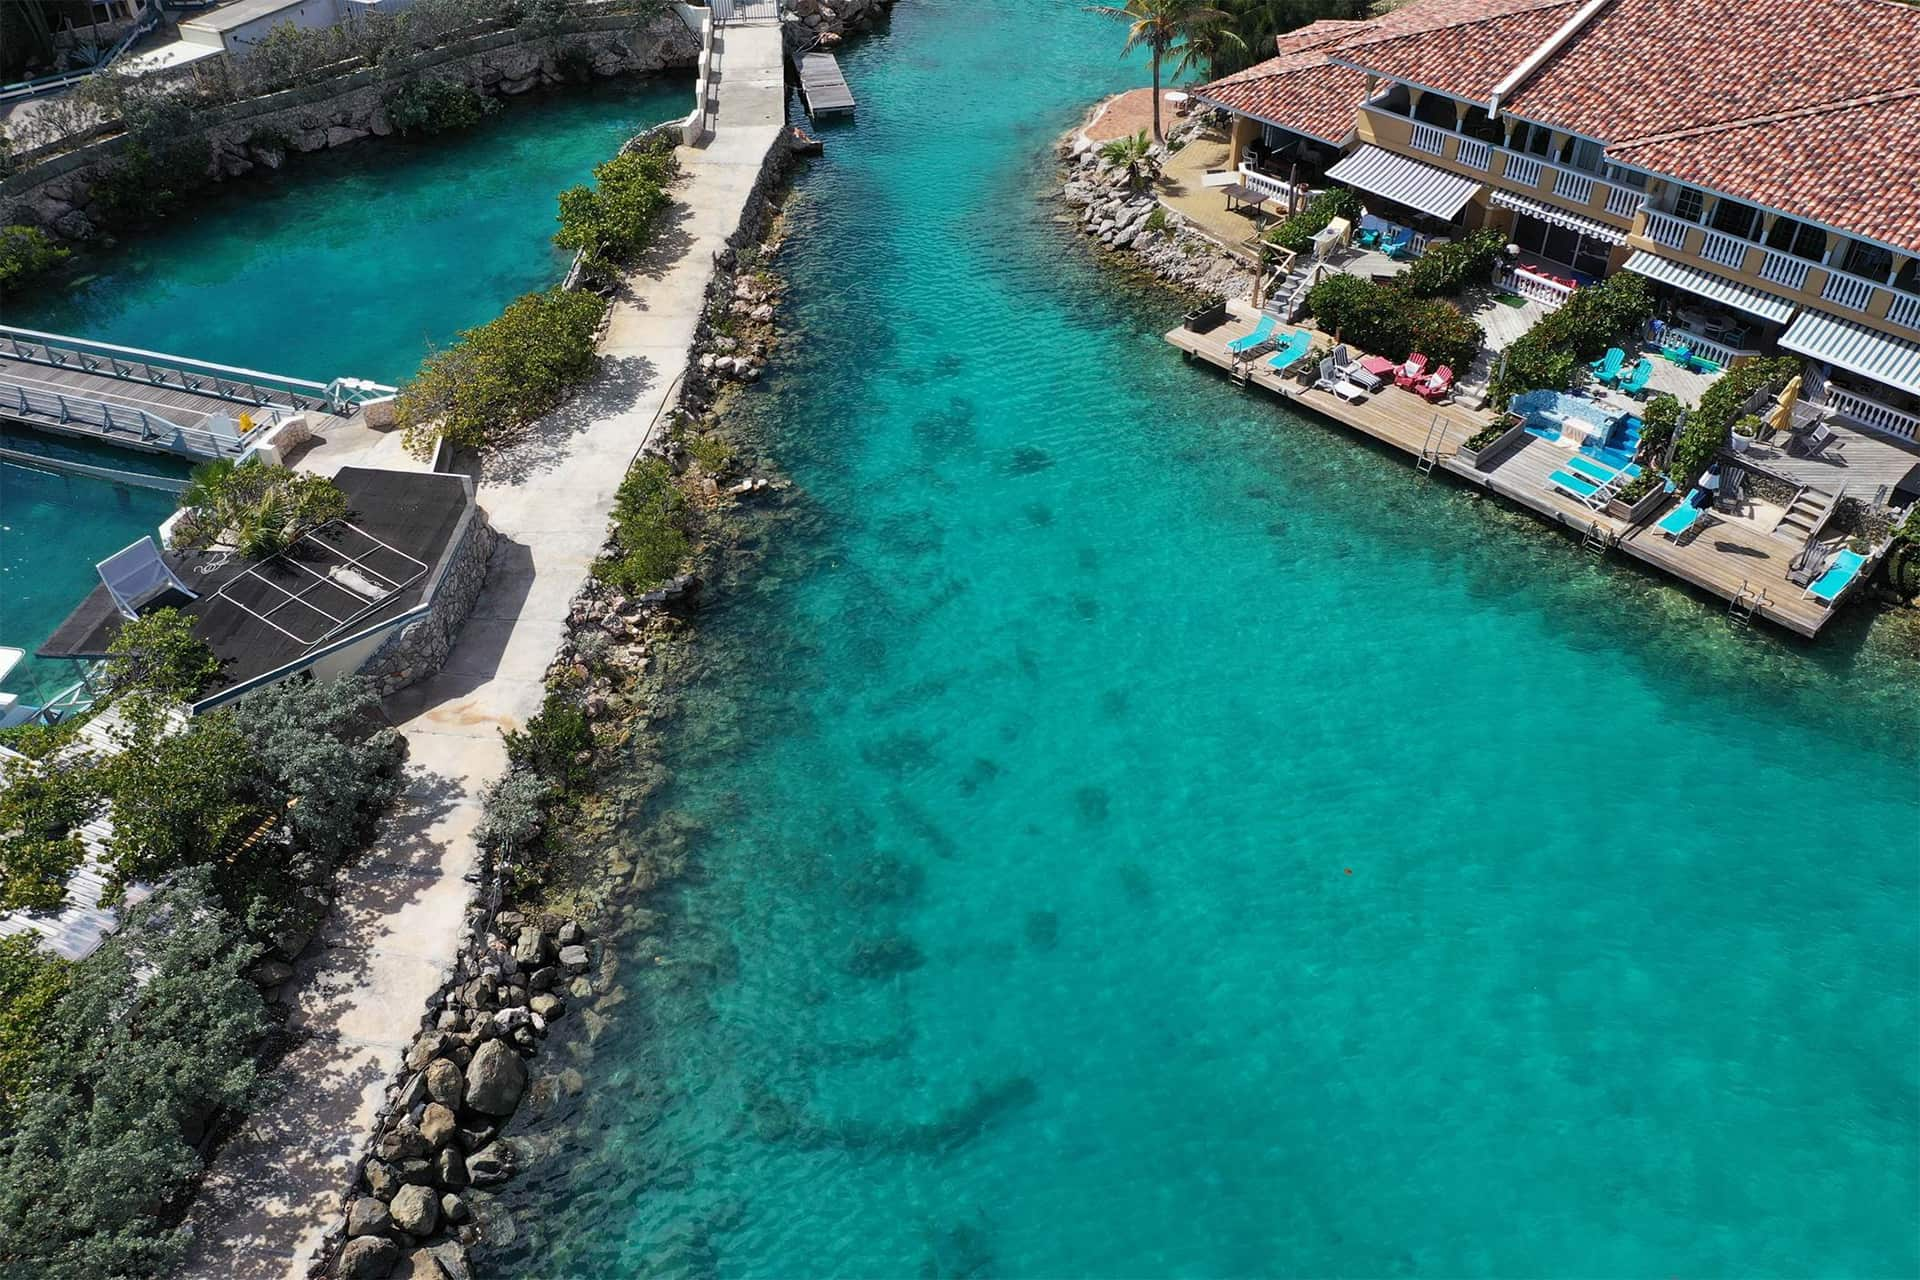 Curacao Sea Aquarium canal restoration project consists of several projects that contribute to the reef.